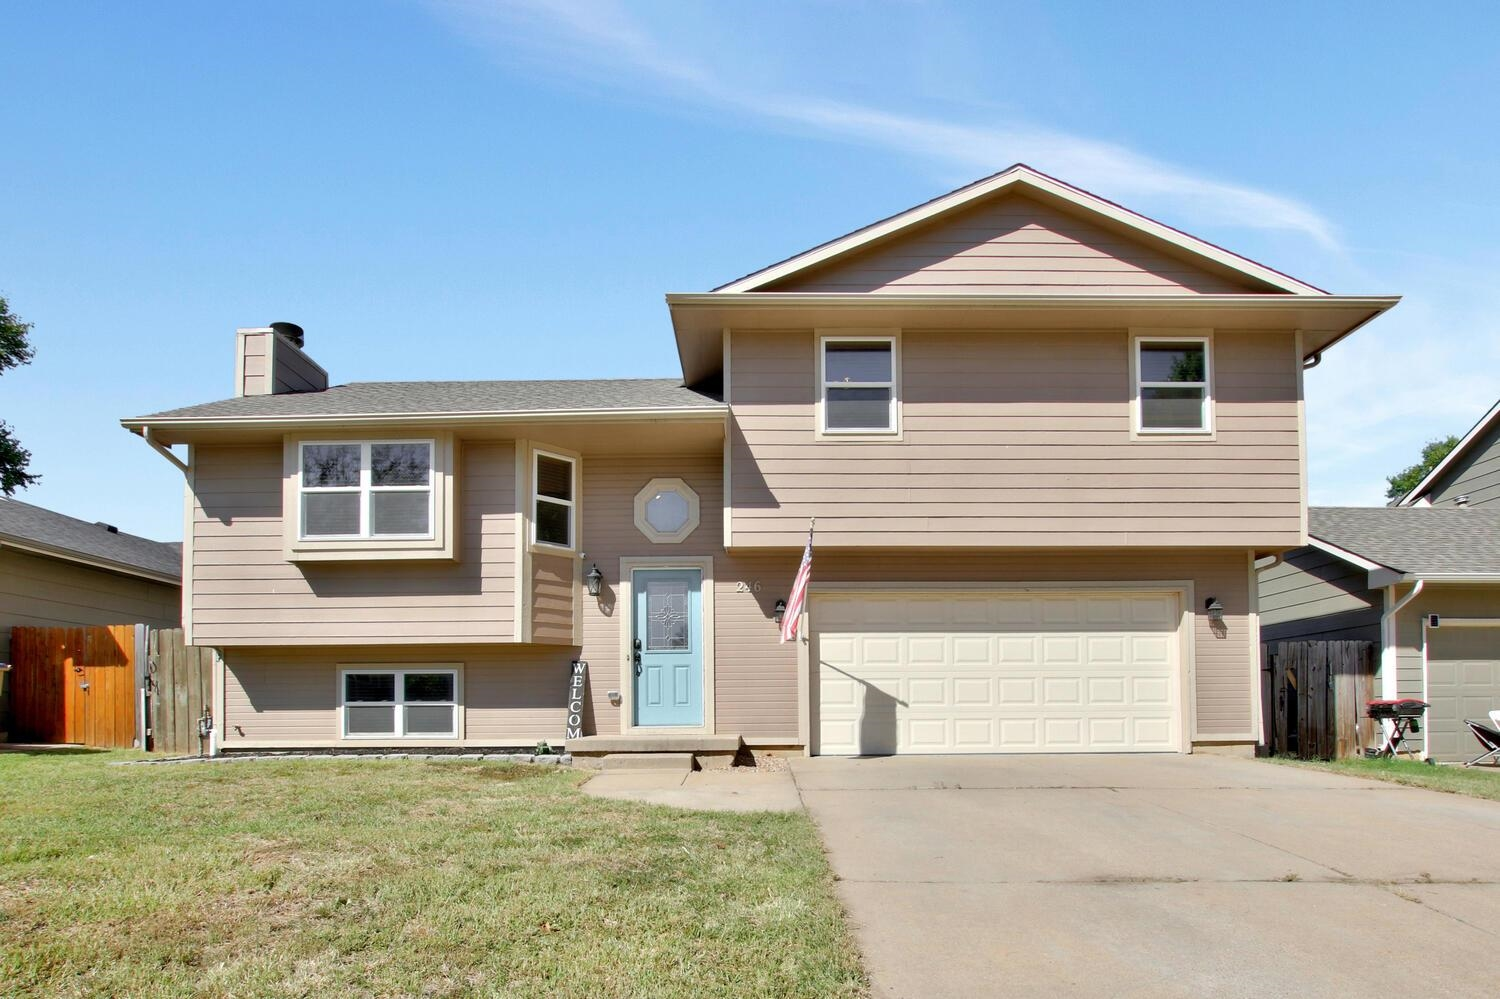 Welcome home! This home features 3 bedroom, 2.5 bathrooms, and 2 car garage. This home features newe